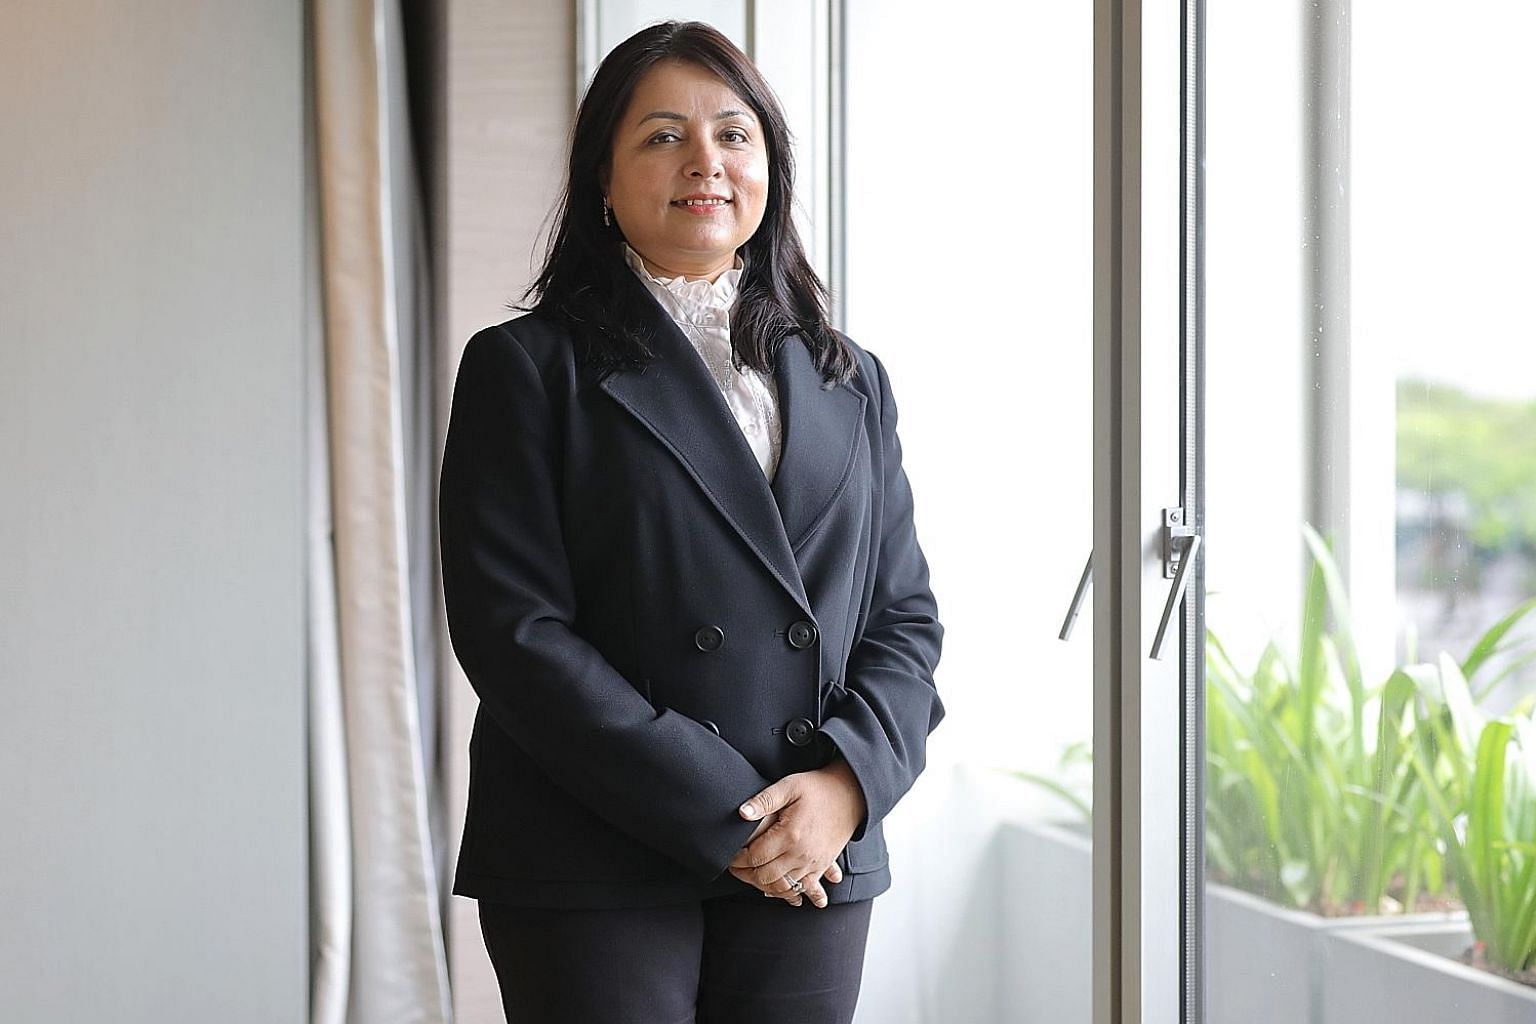 Ms Balaka Niyazee started in the sales department of Procter & Gamble when she finished graduate school. She rose through the ranks and past society's gender discrimination to become the vice-president of the company's division in South Korea, where